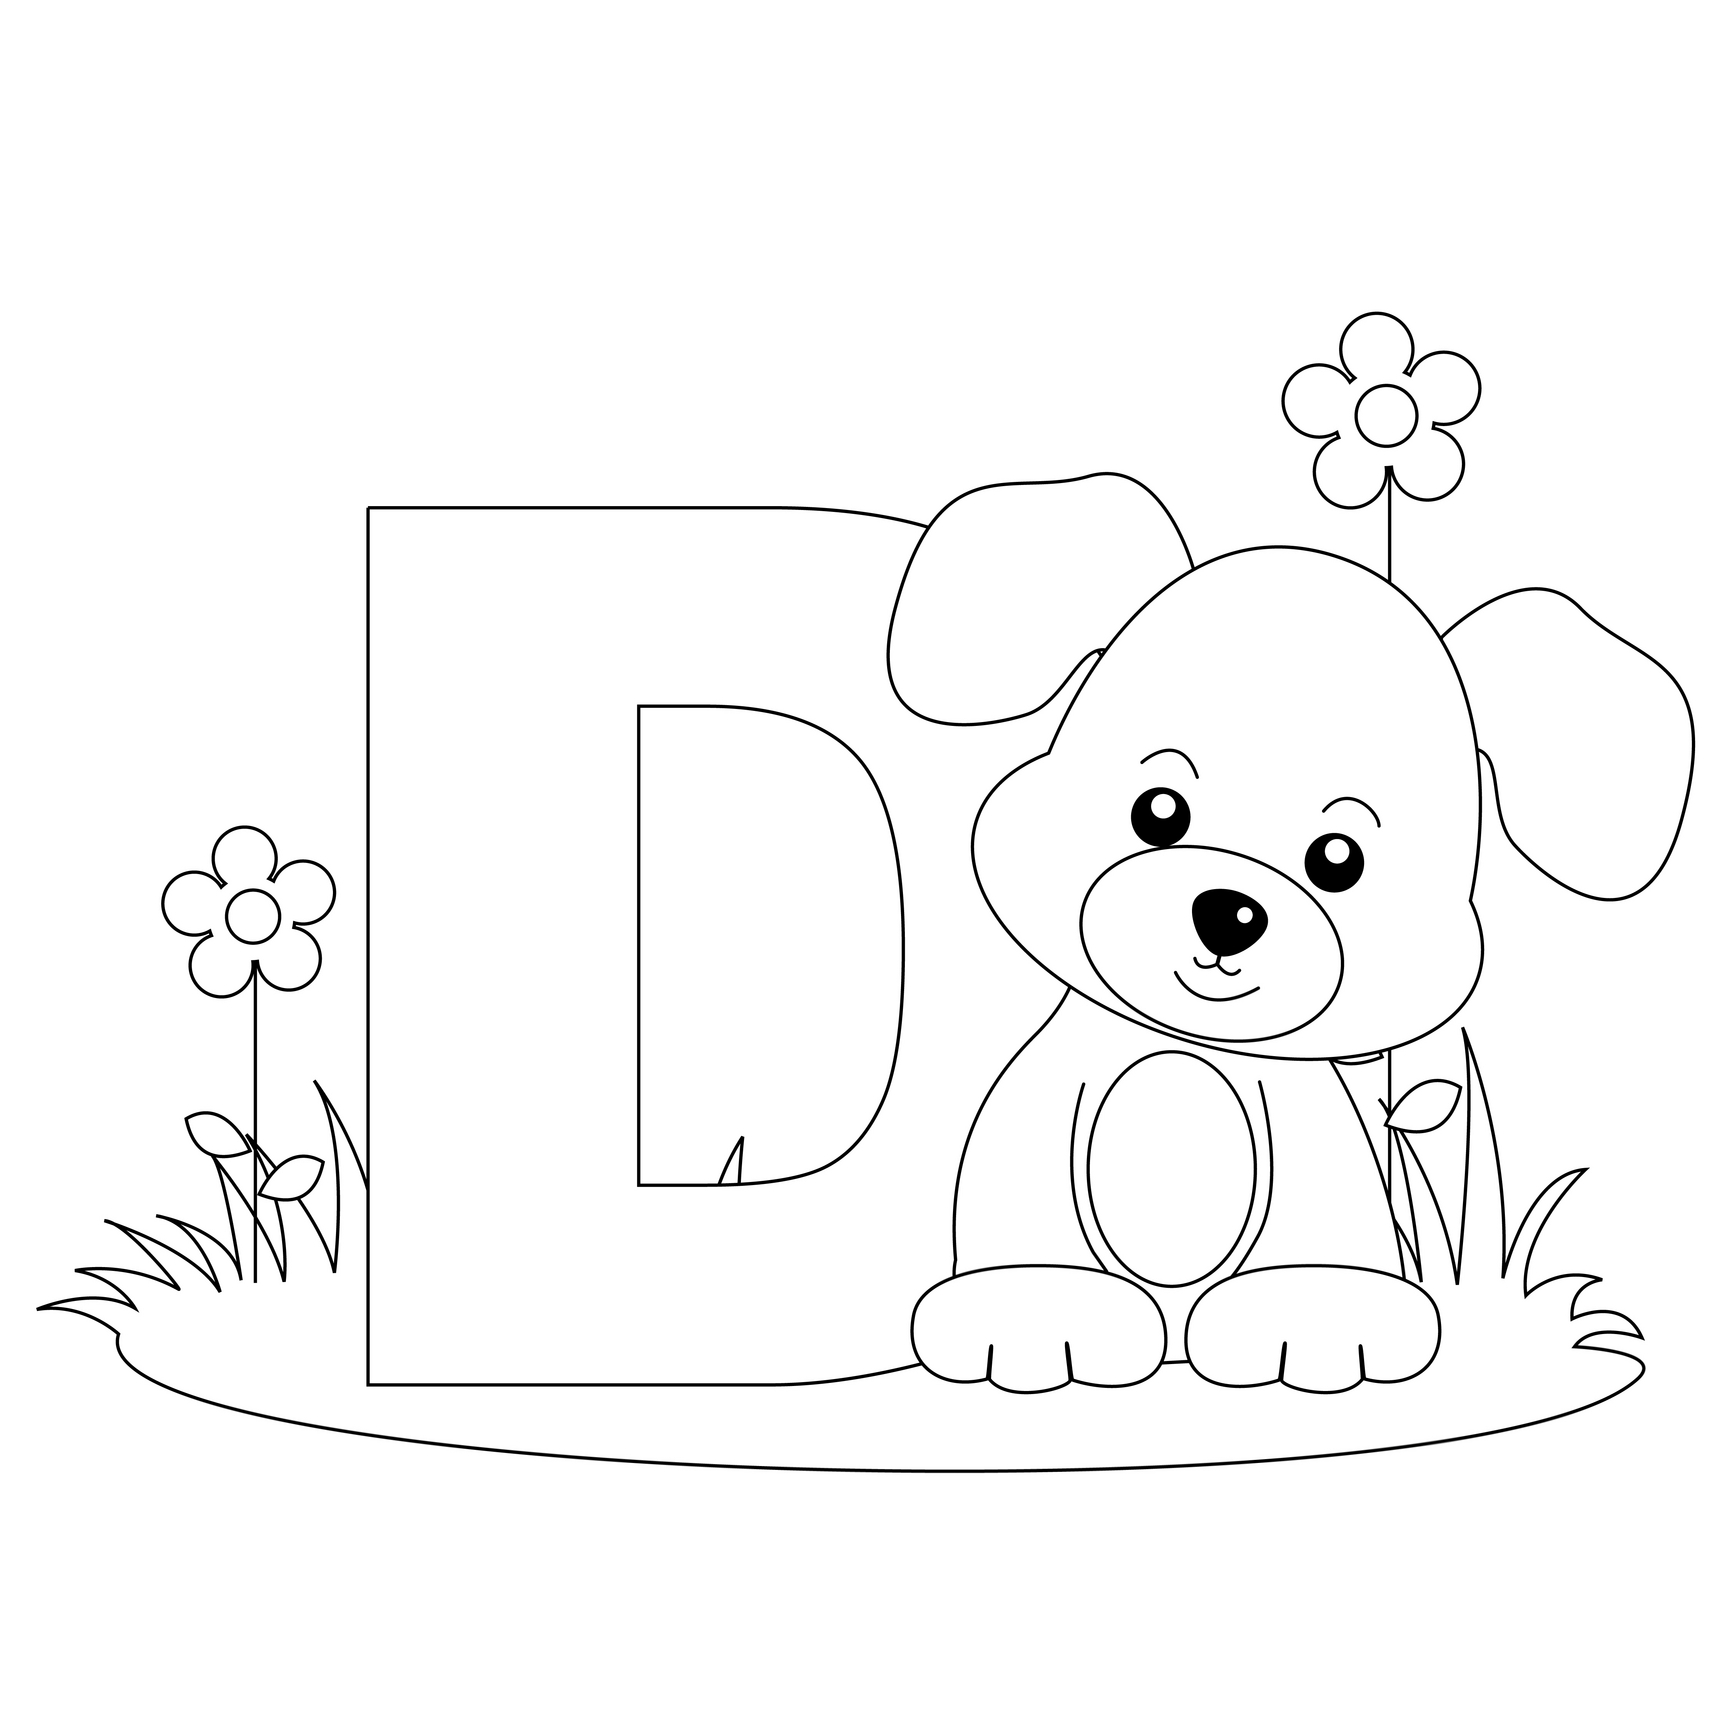 Free Printable Letter Coloring Pages at GetDrawings.com | Free for ...